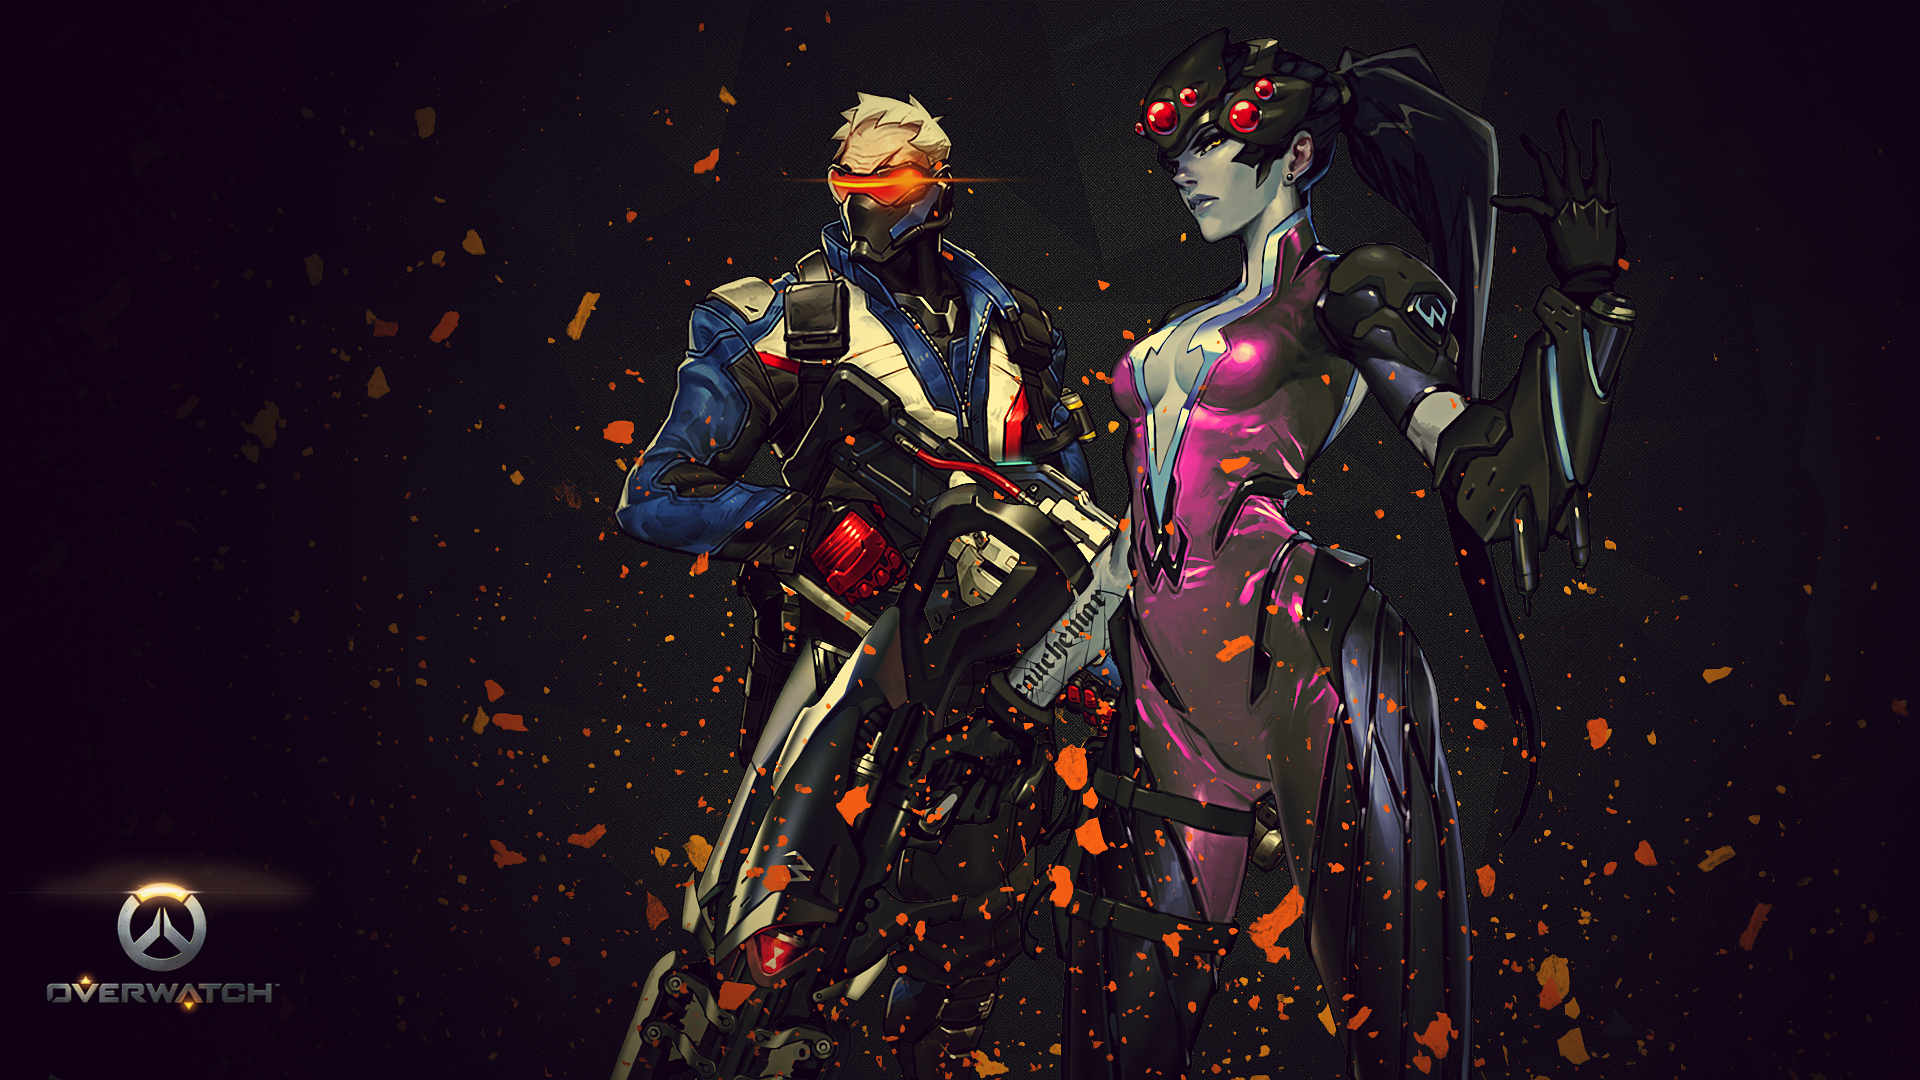 soldier 76 wallpaper - photo #9